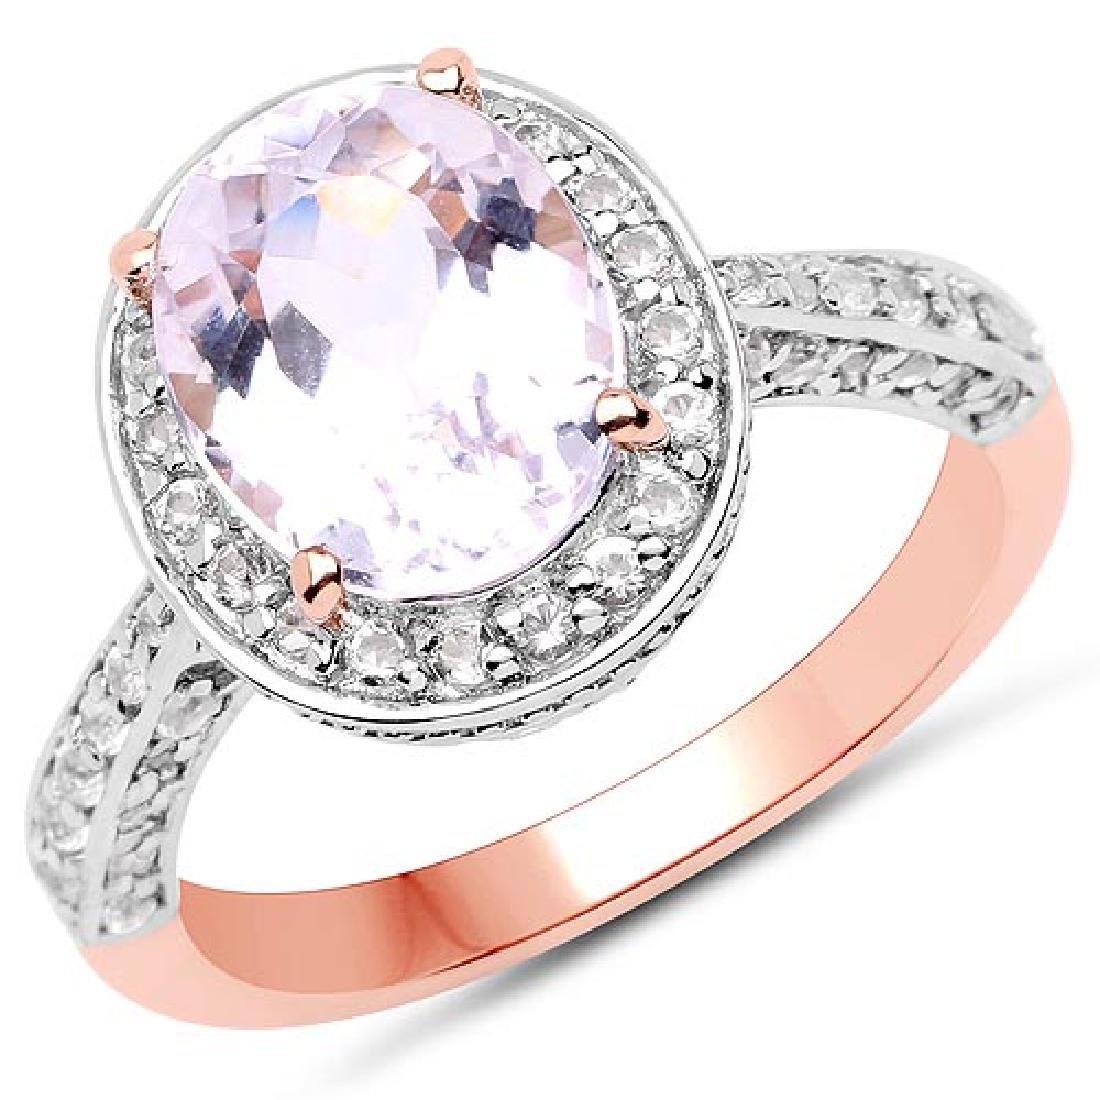 14K Rose Gold Plated 3.86 Carat Genuine Kunzite and Whi